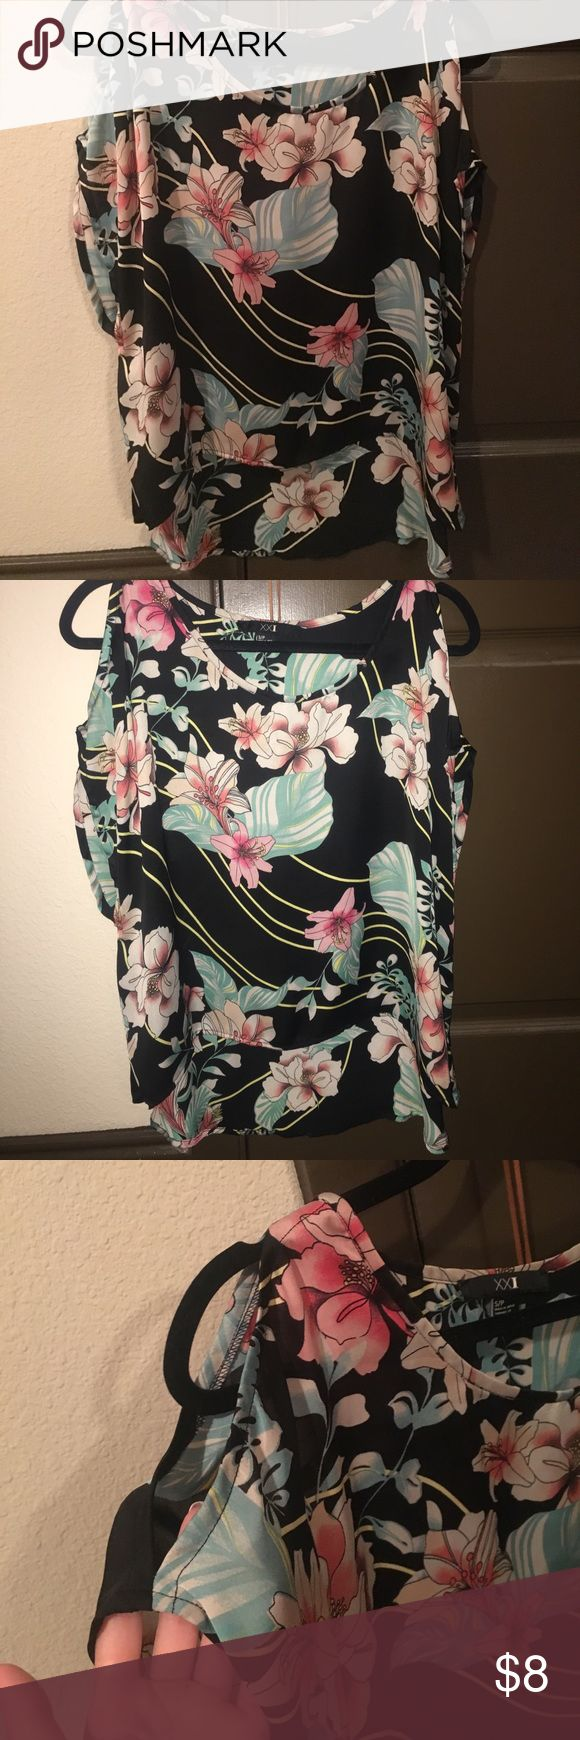 Asian/ tropical cold shoulder blouse Can use as a swim cover up Forever 21 Tops Blouses